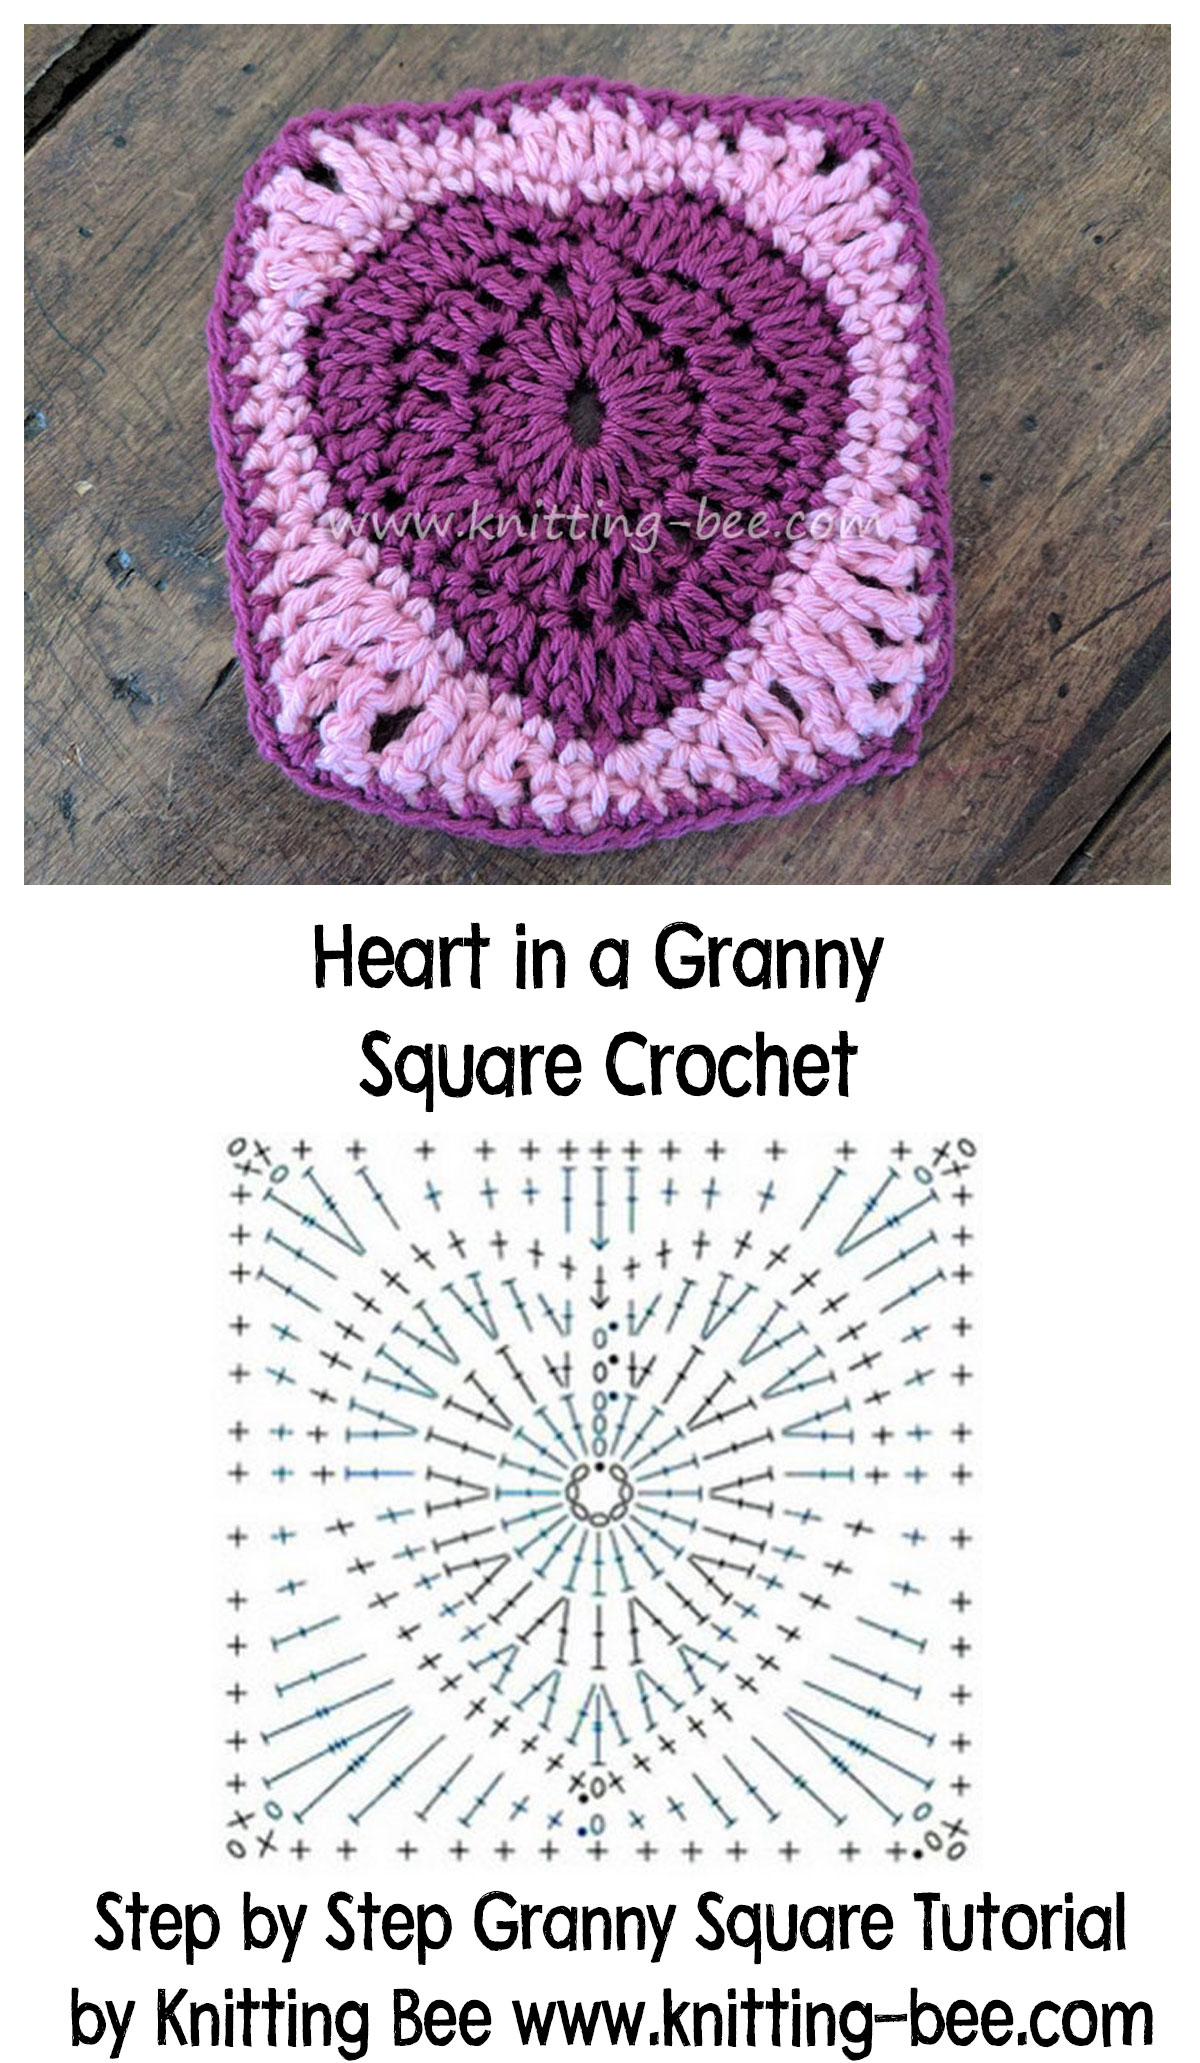 diagram for granny square crochet stitch rv monitor panel wiring heart in a free step by